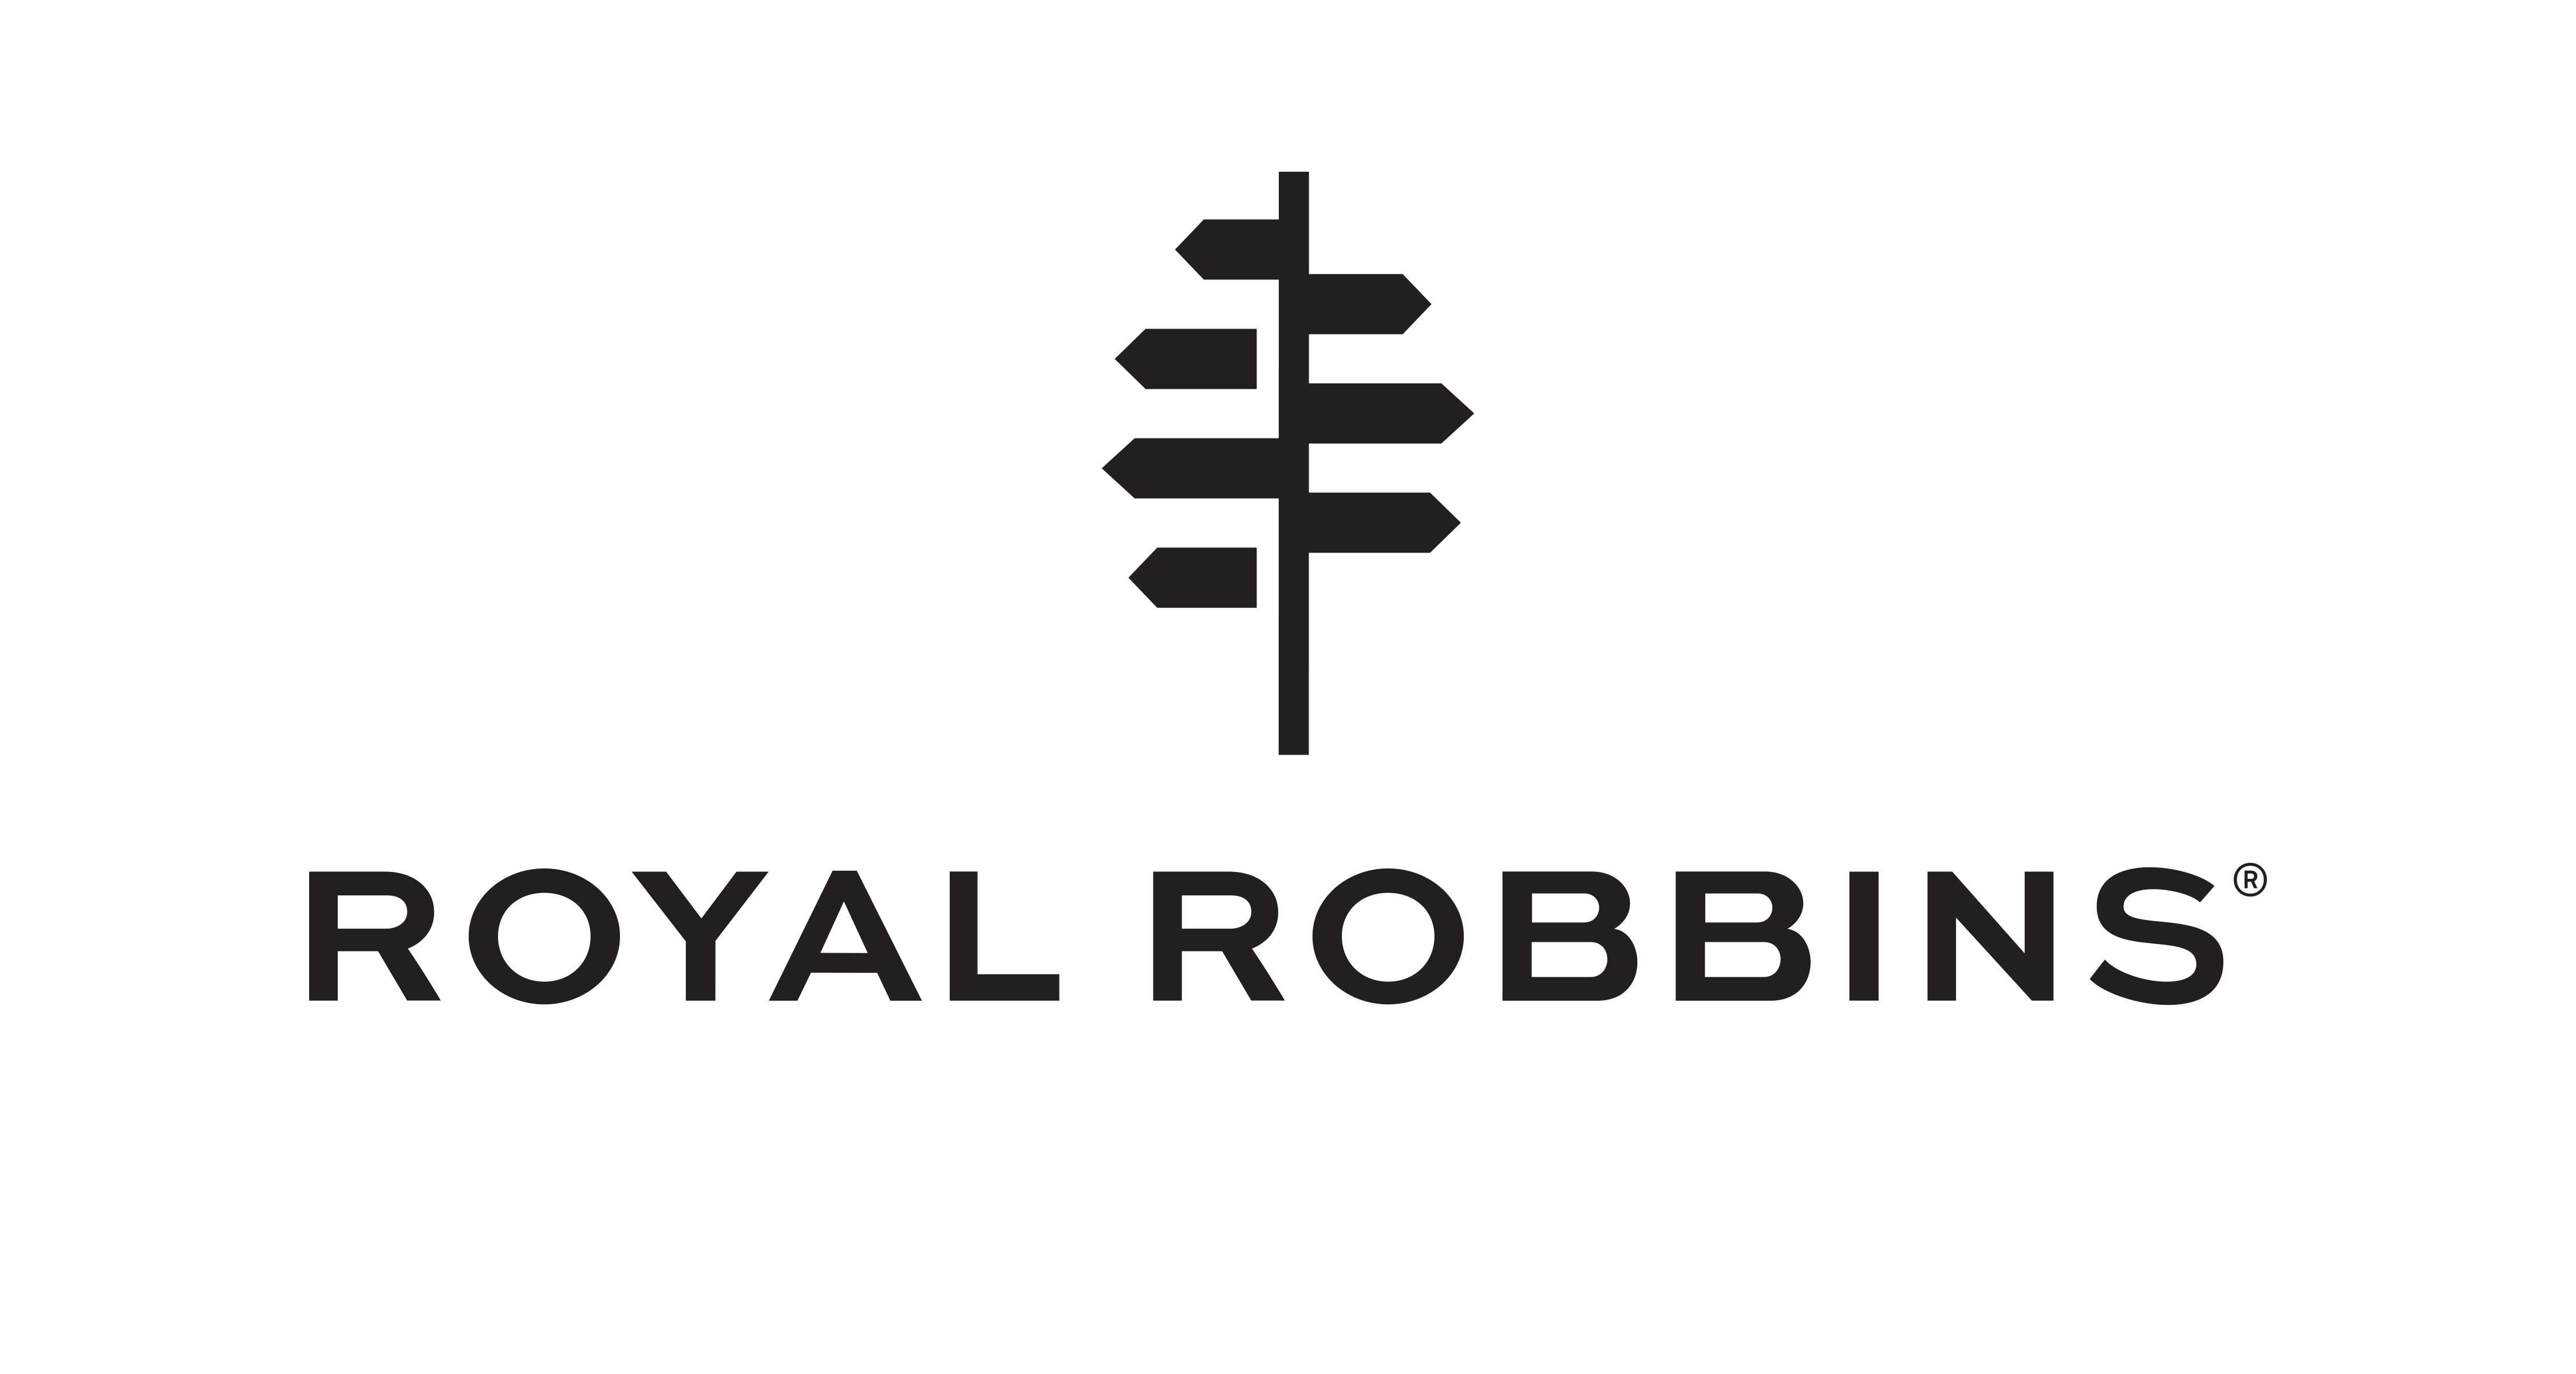 Royal Robbins NA Help Center home page